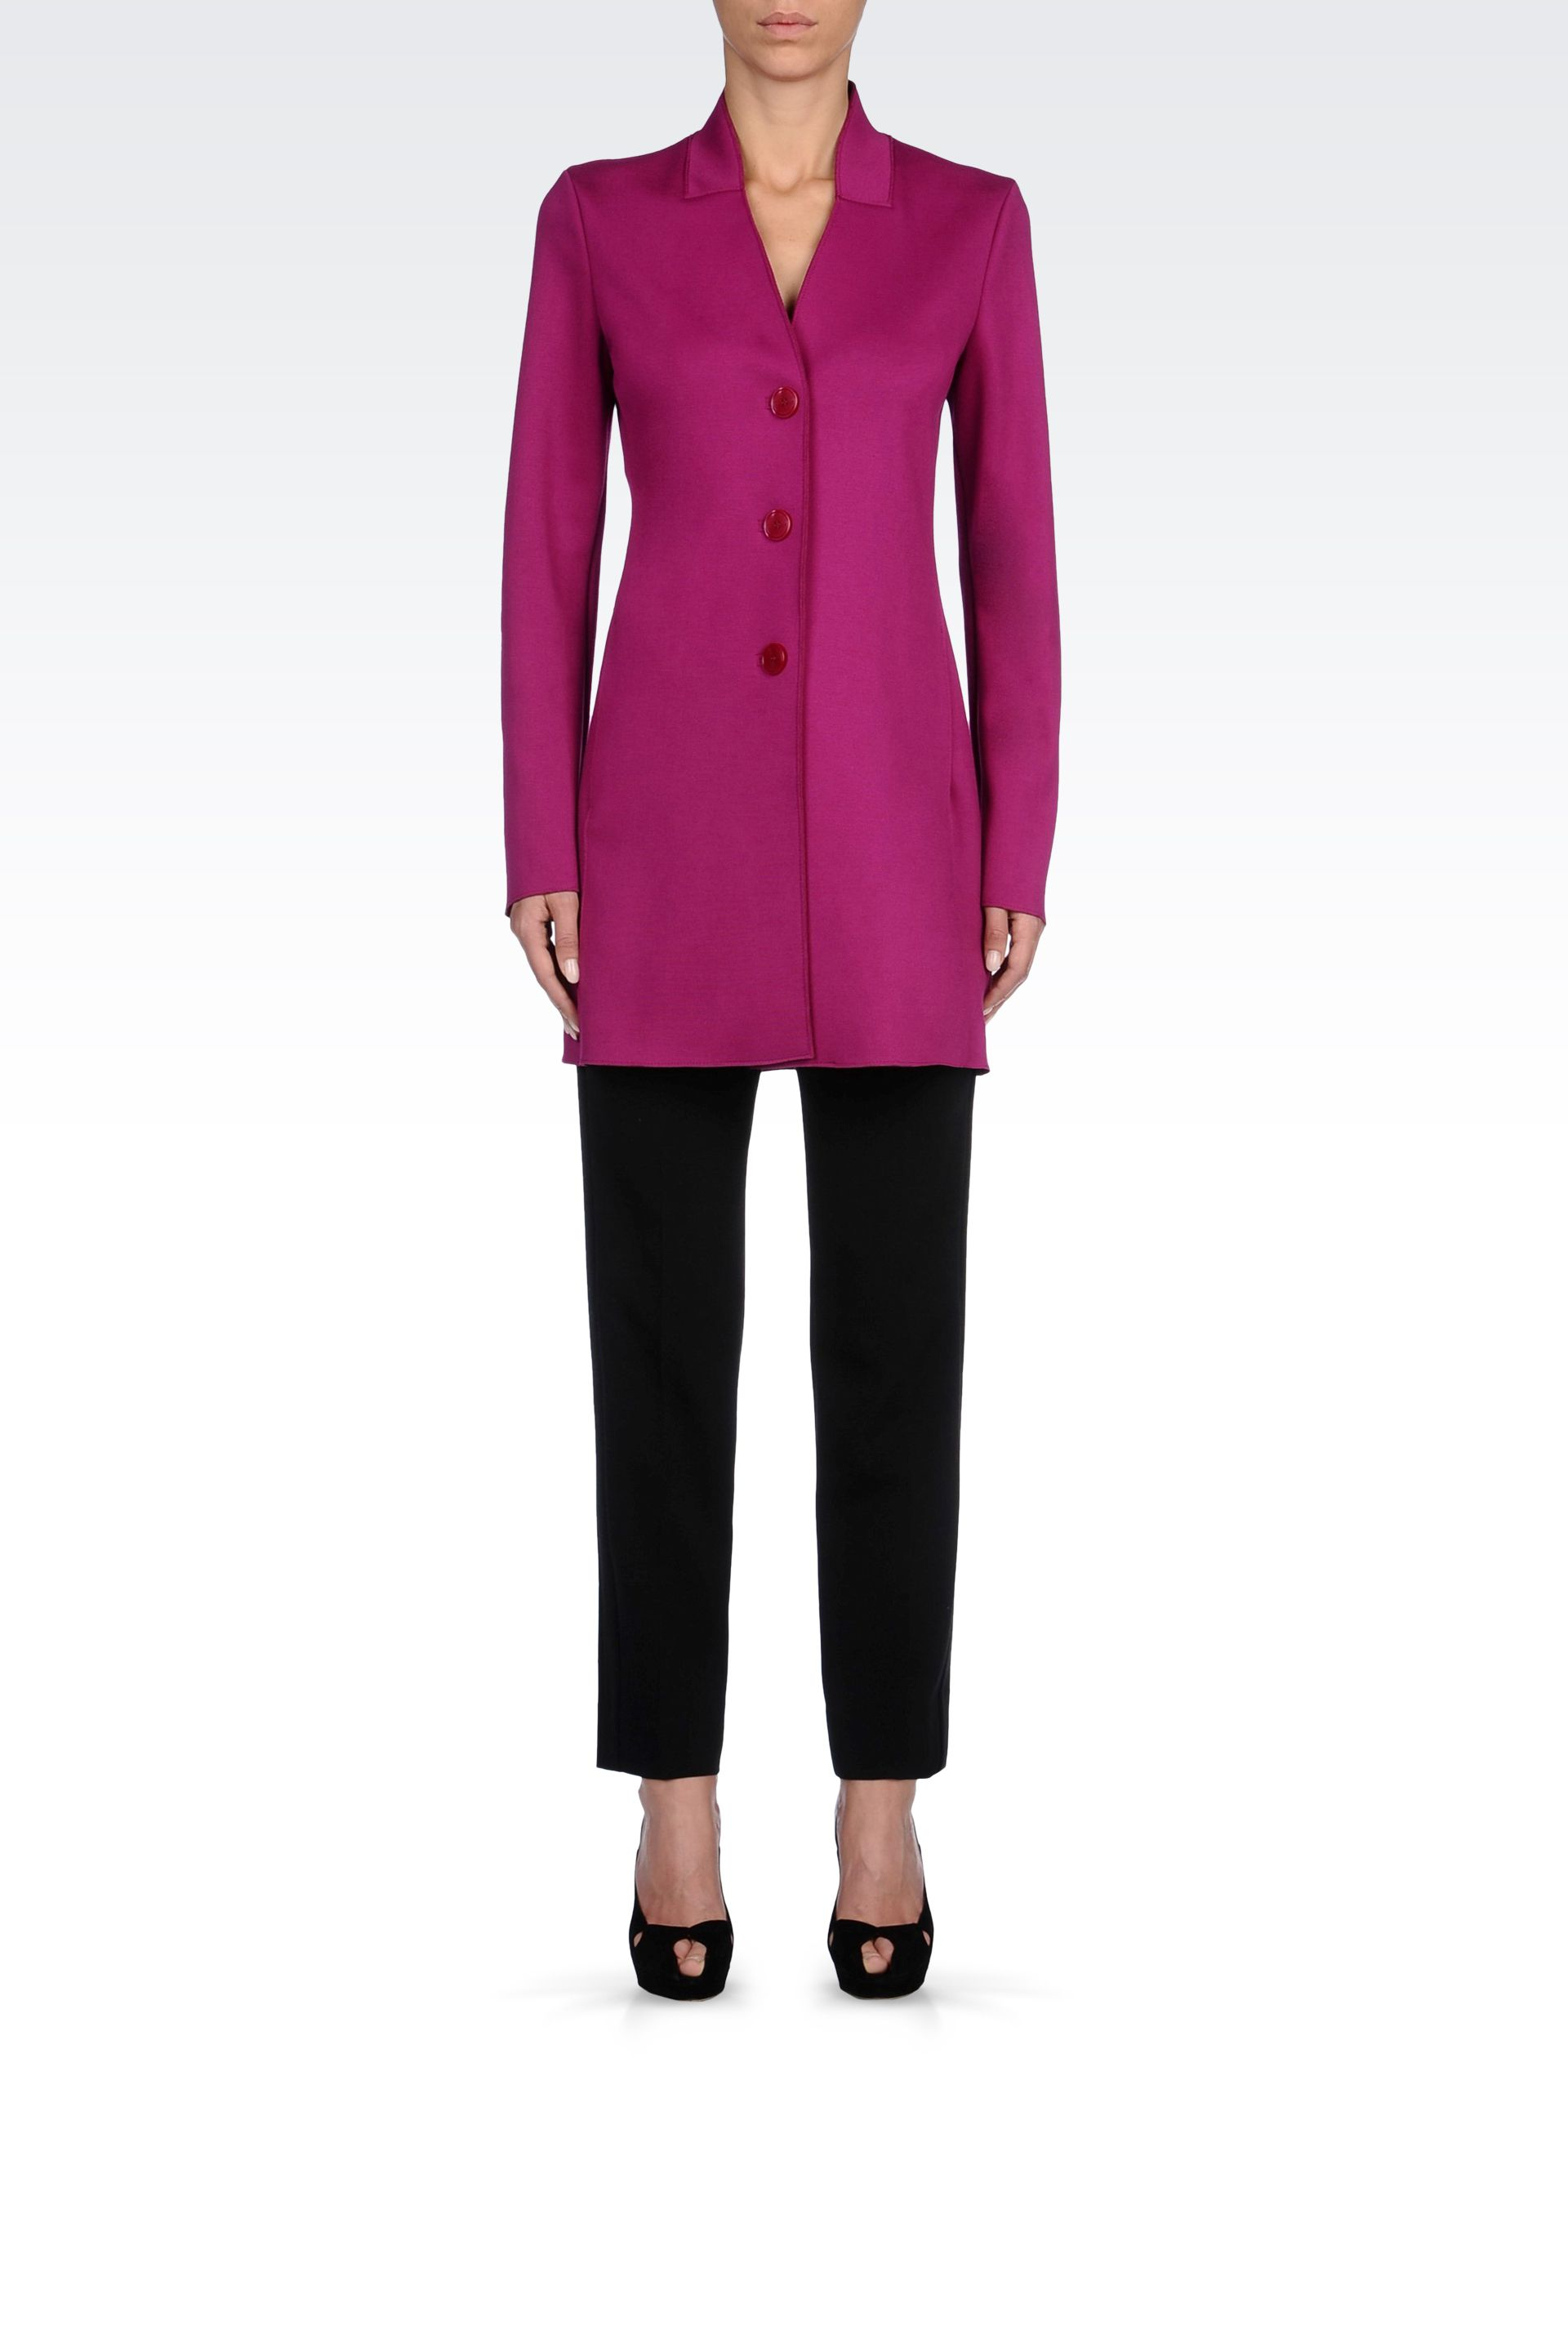 Lyst Emporio Armani Coat In Neoprene In Purple